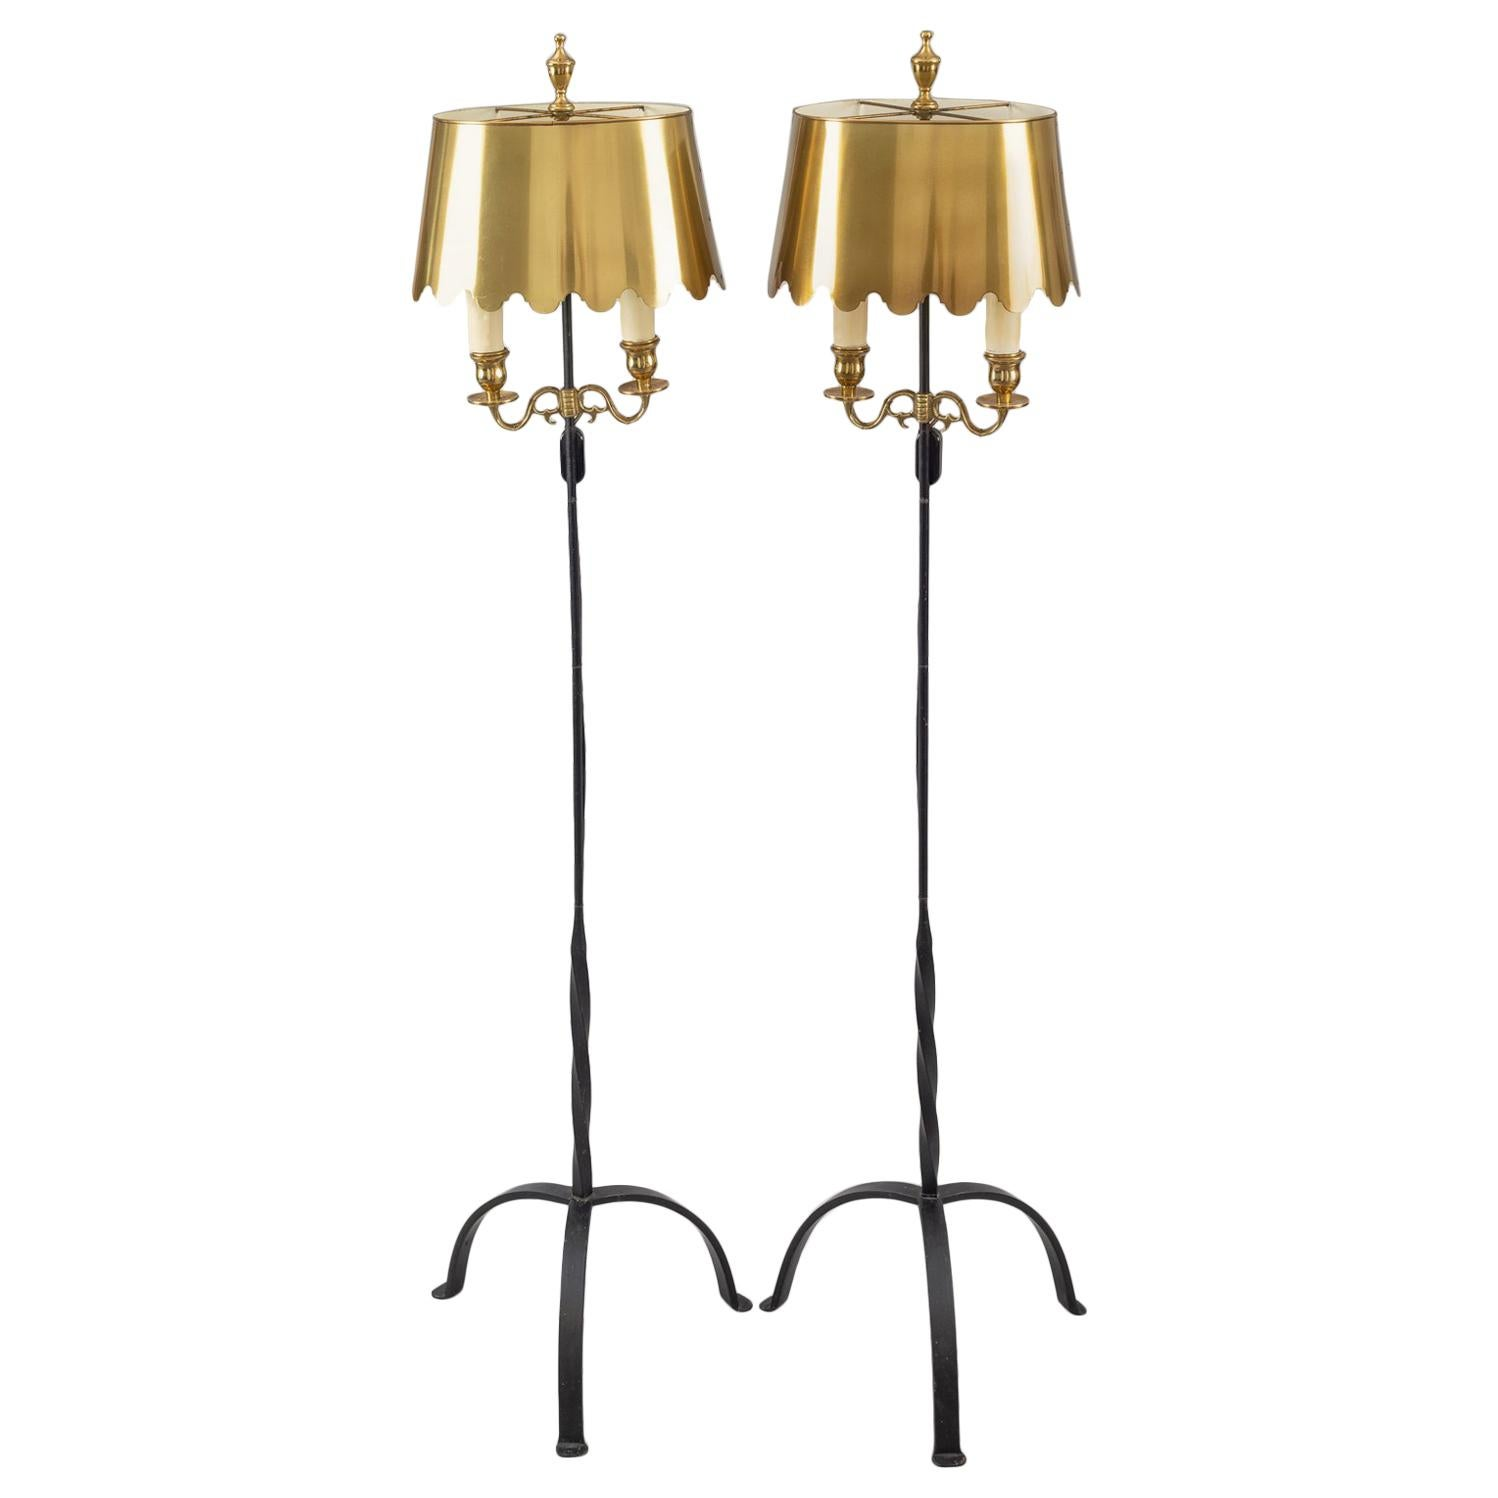 Pedestal Floor Lamps Vintage Pair Of Fortuny Wrought Iron And Brass Floor Lamps